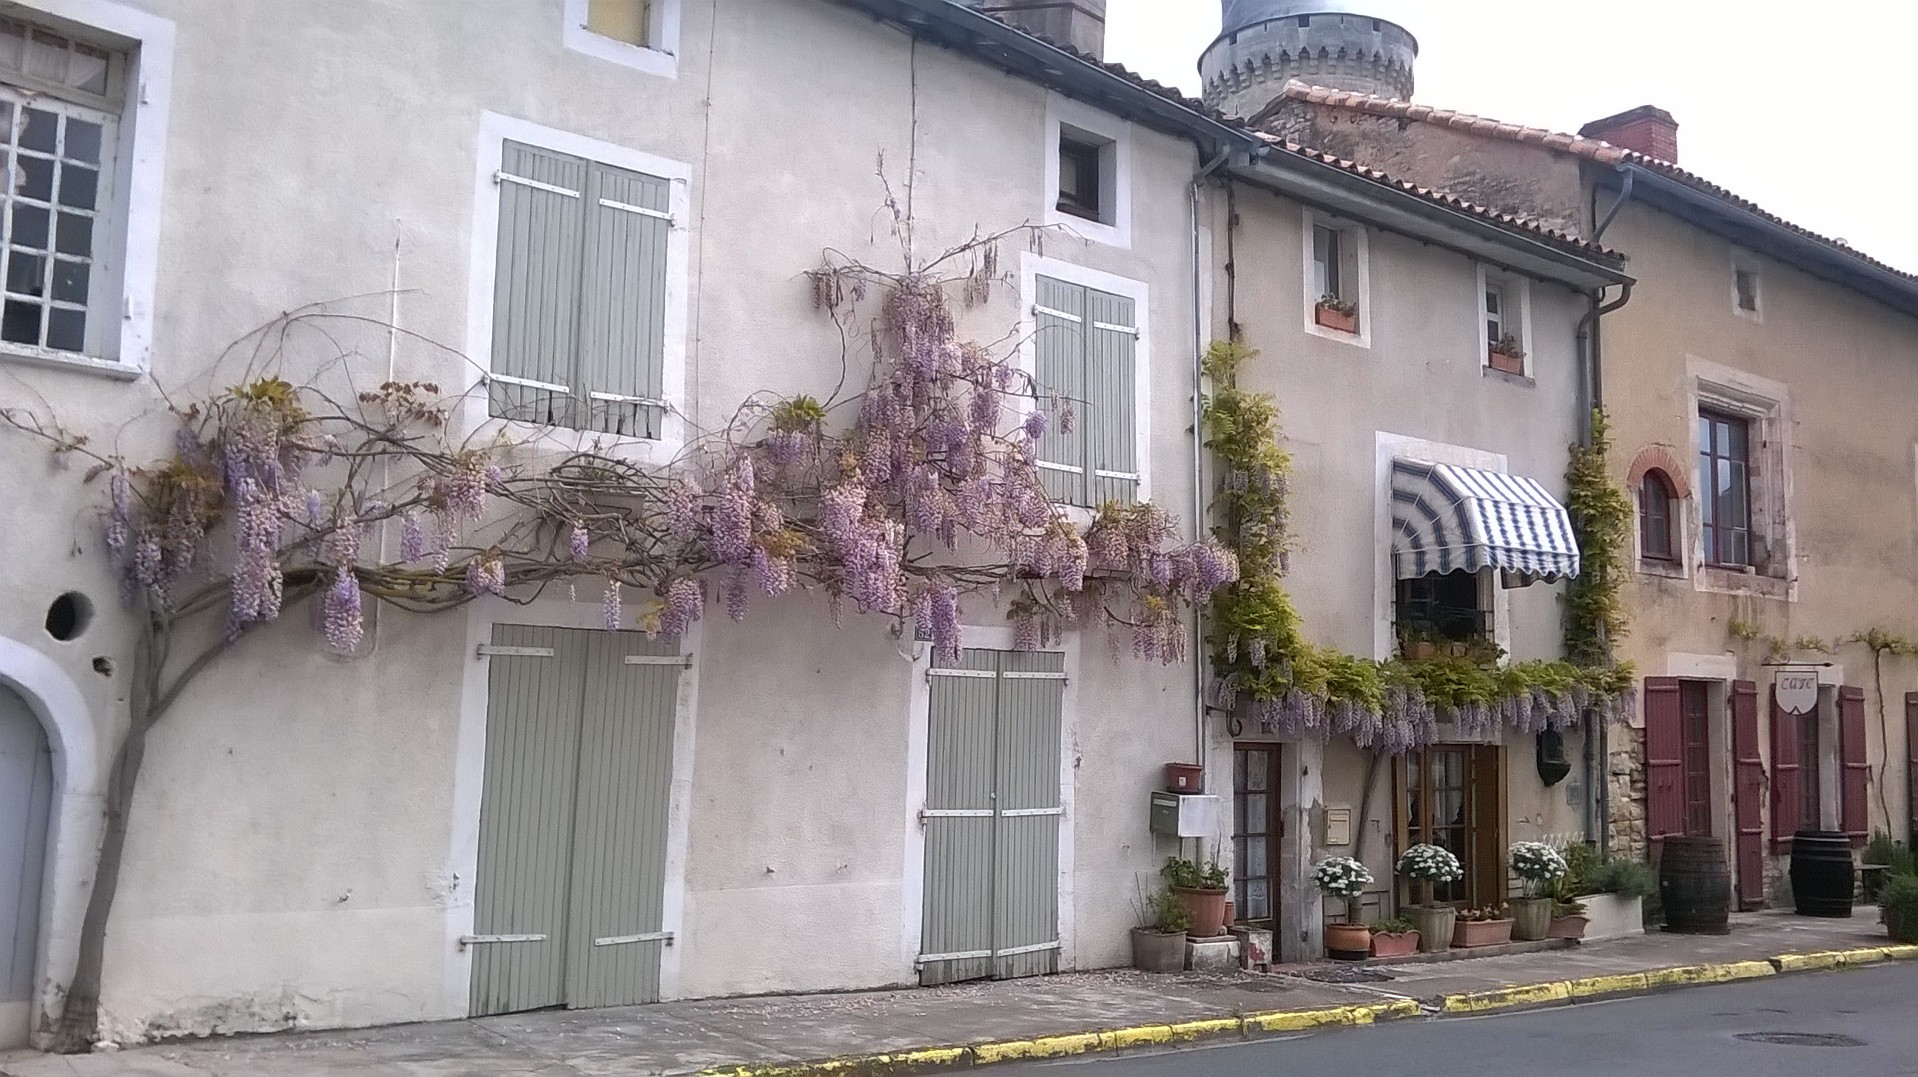 Local wisteria and wine bar